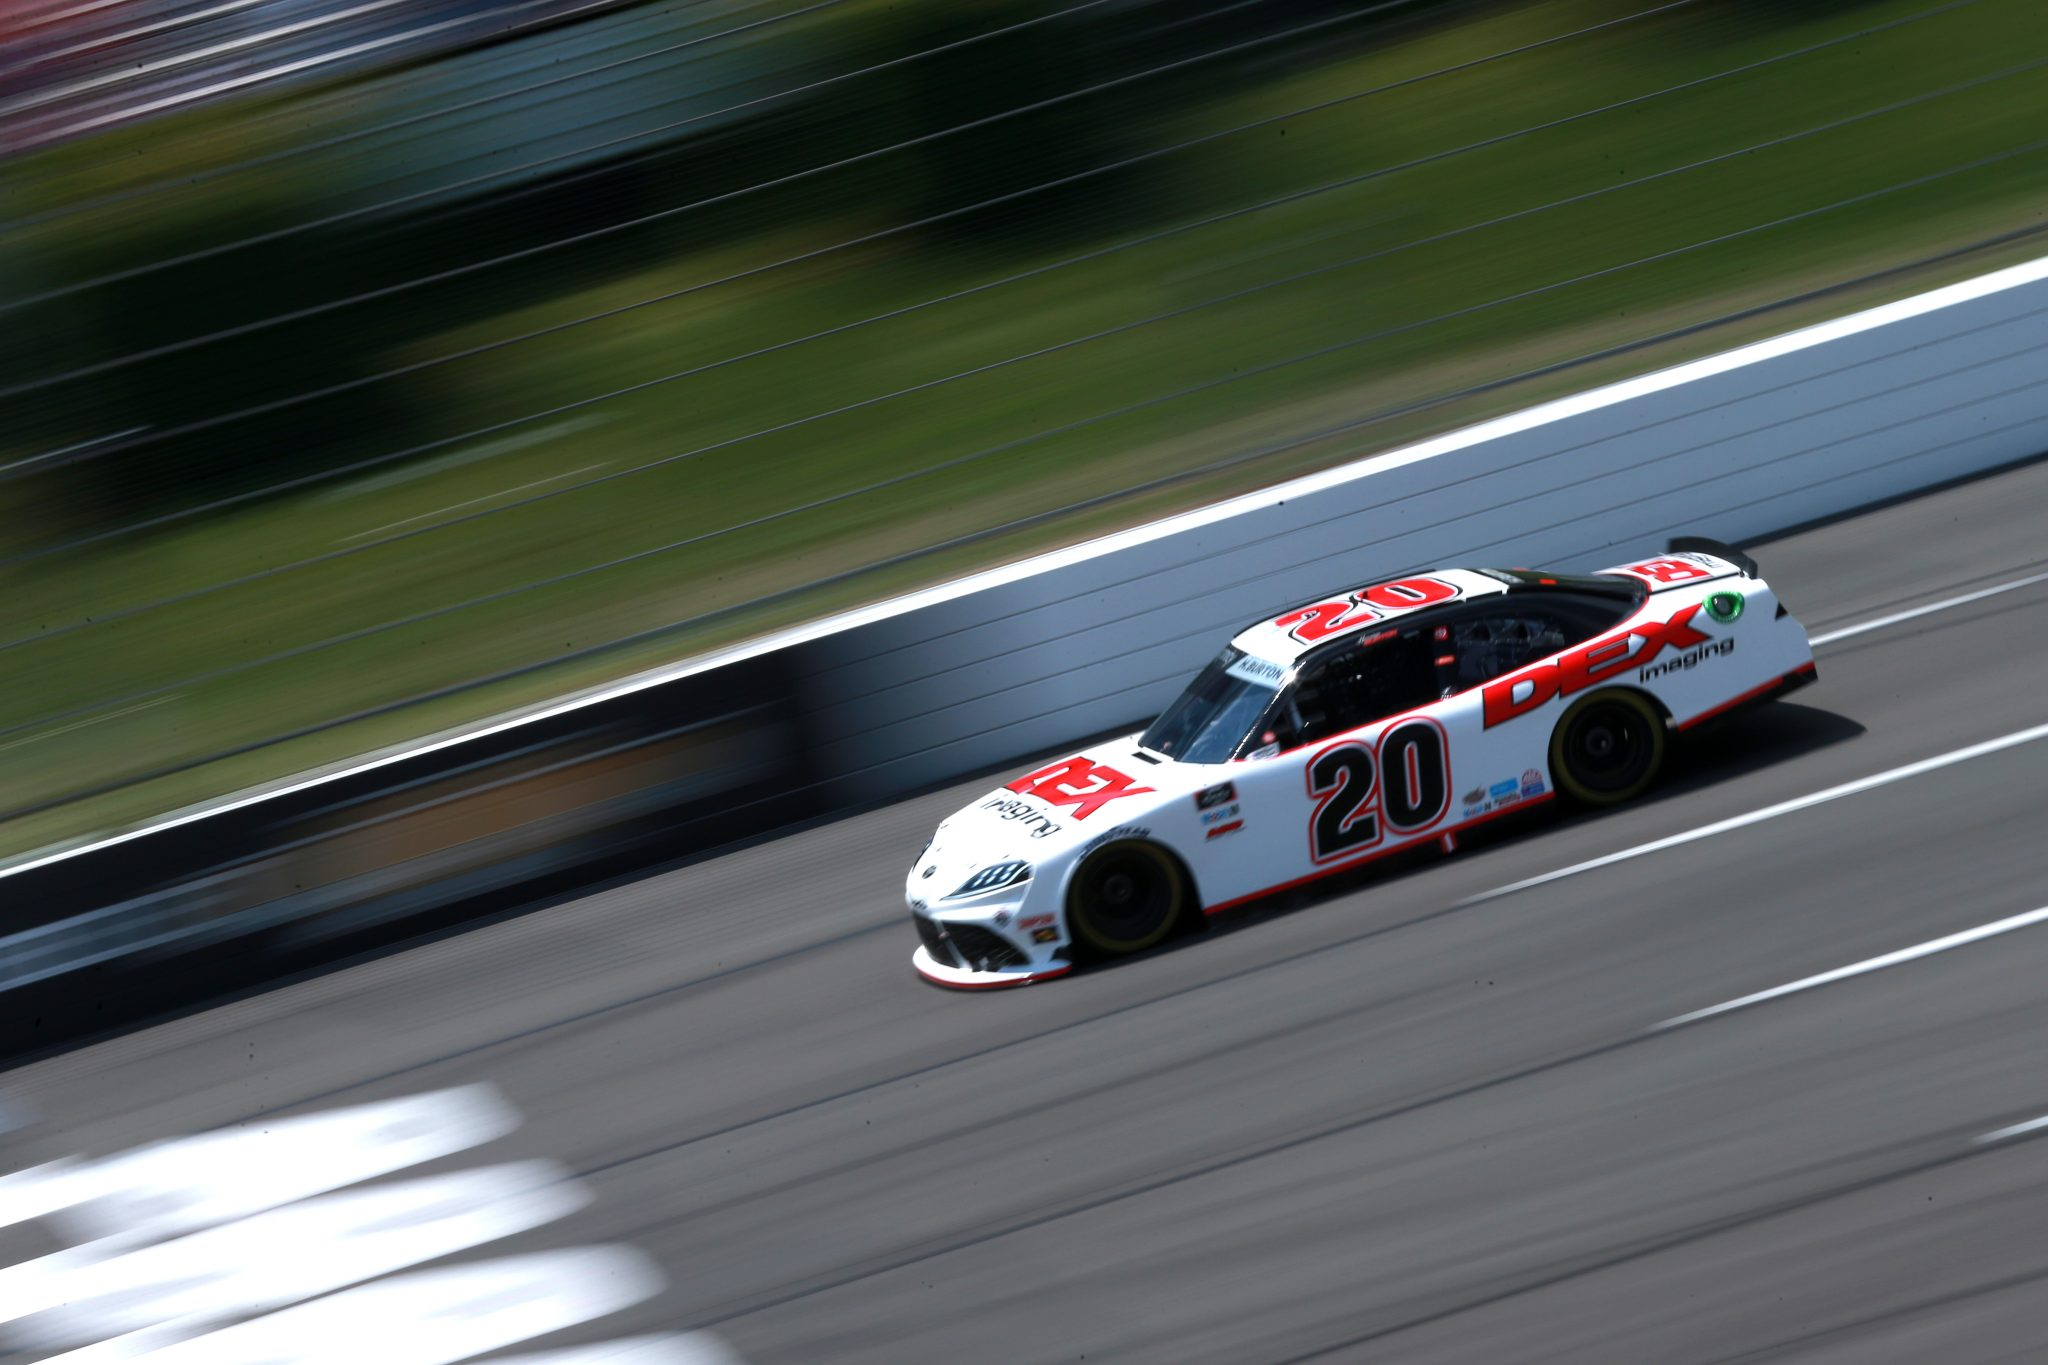 LONG POND, PENNSYLVANIA - JUNE 27: Harrison Burton, driver of the #20 DEX Imaging Toyota, drives during the NASCAR Xfinity Series Pocono Green 225 Recycled by J.P. Mascaro & Sons at Pocono Raceway on June 27, 2021 in Long Pond, Pennsylvania. (Photo by Sean Gardner/Getty Images) | Getty Images